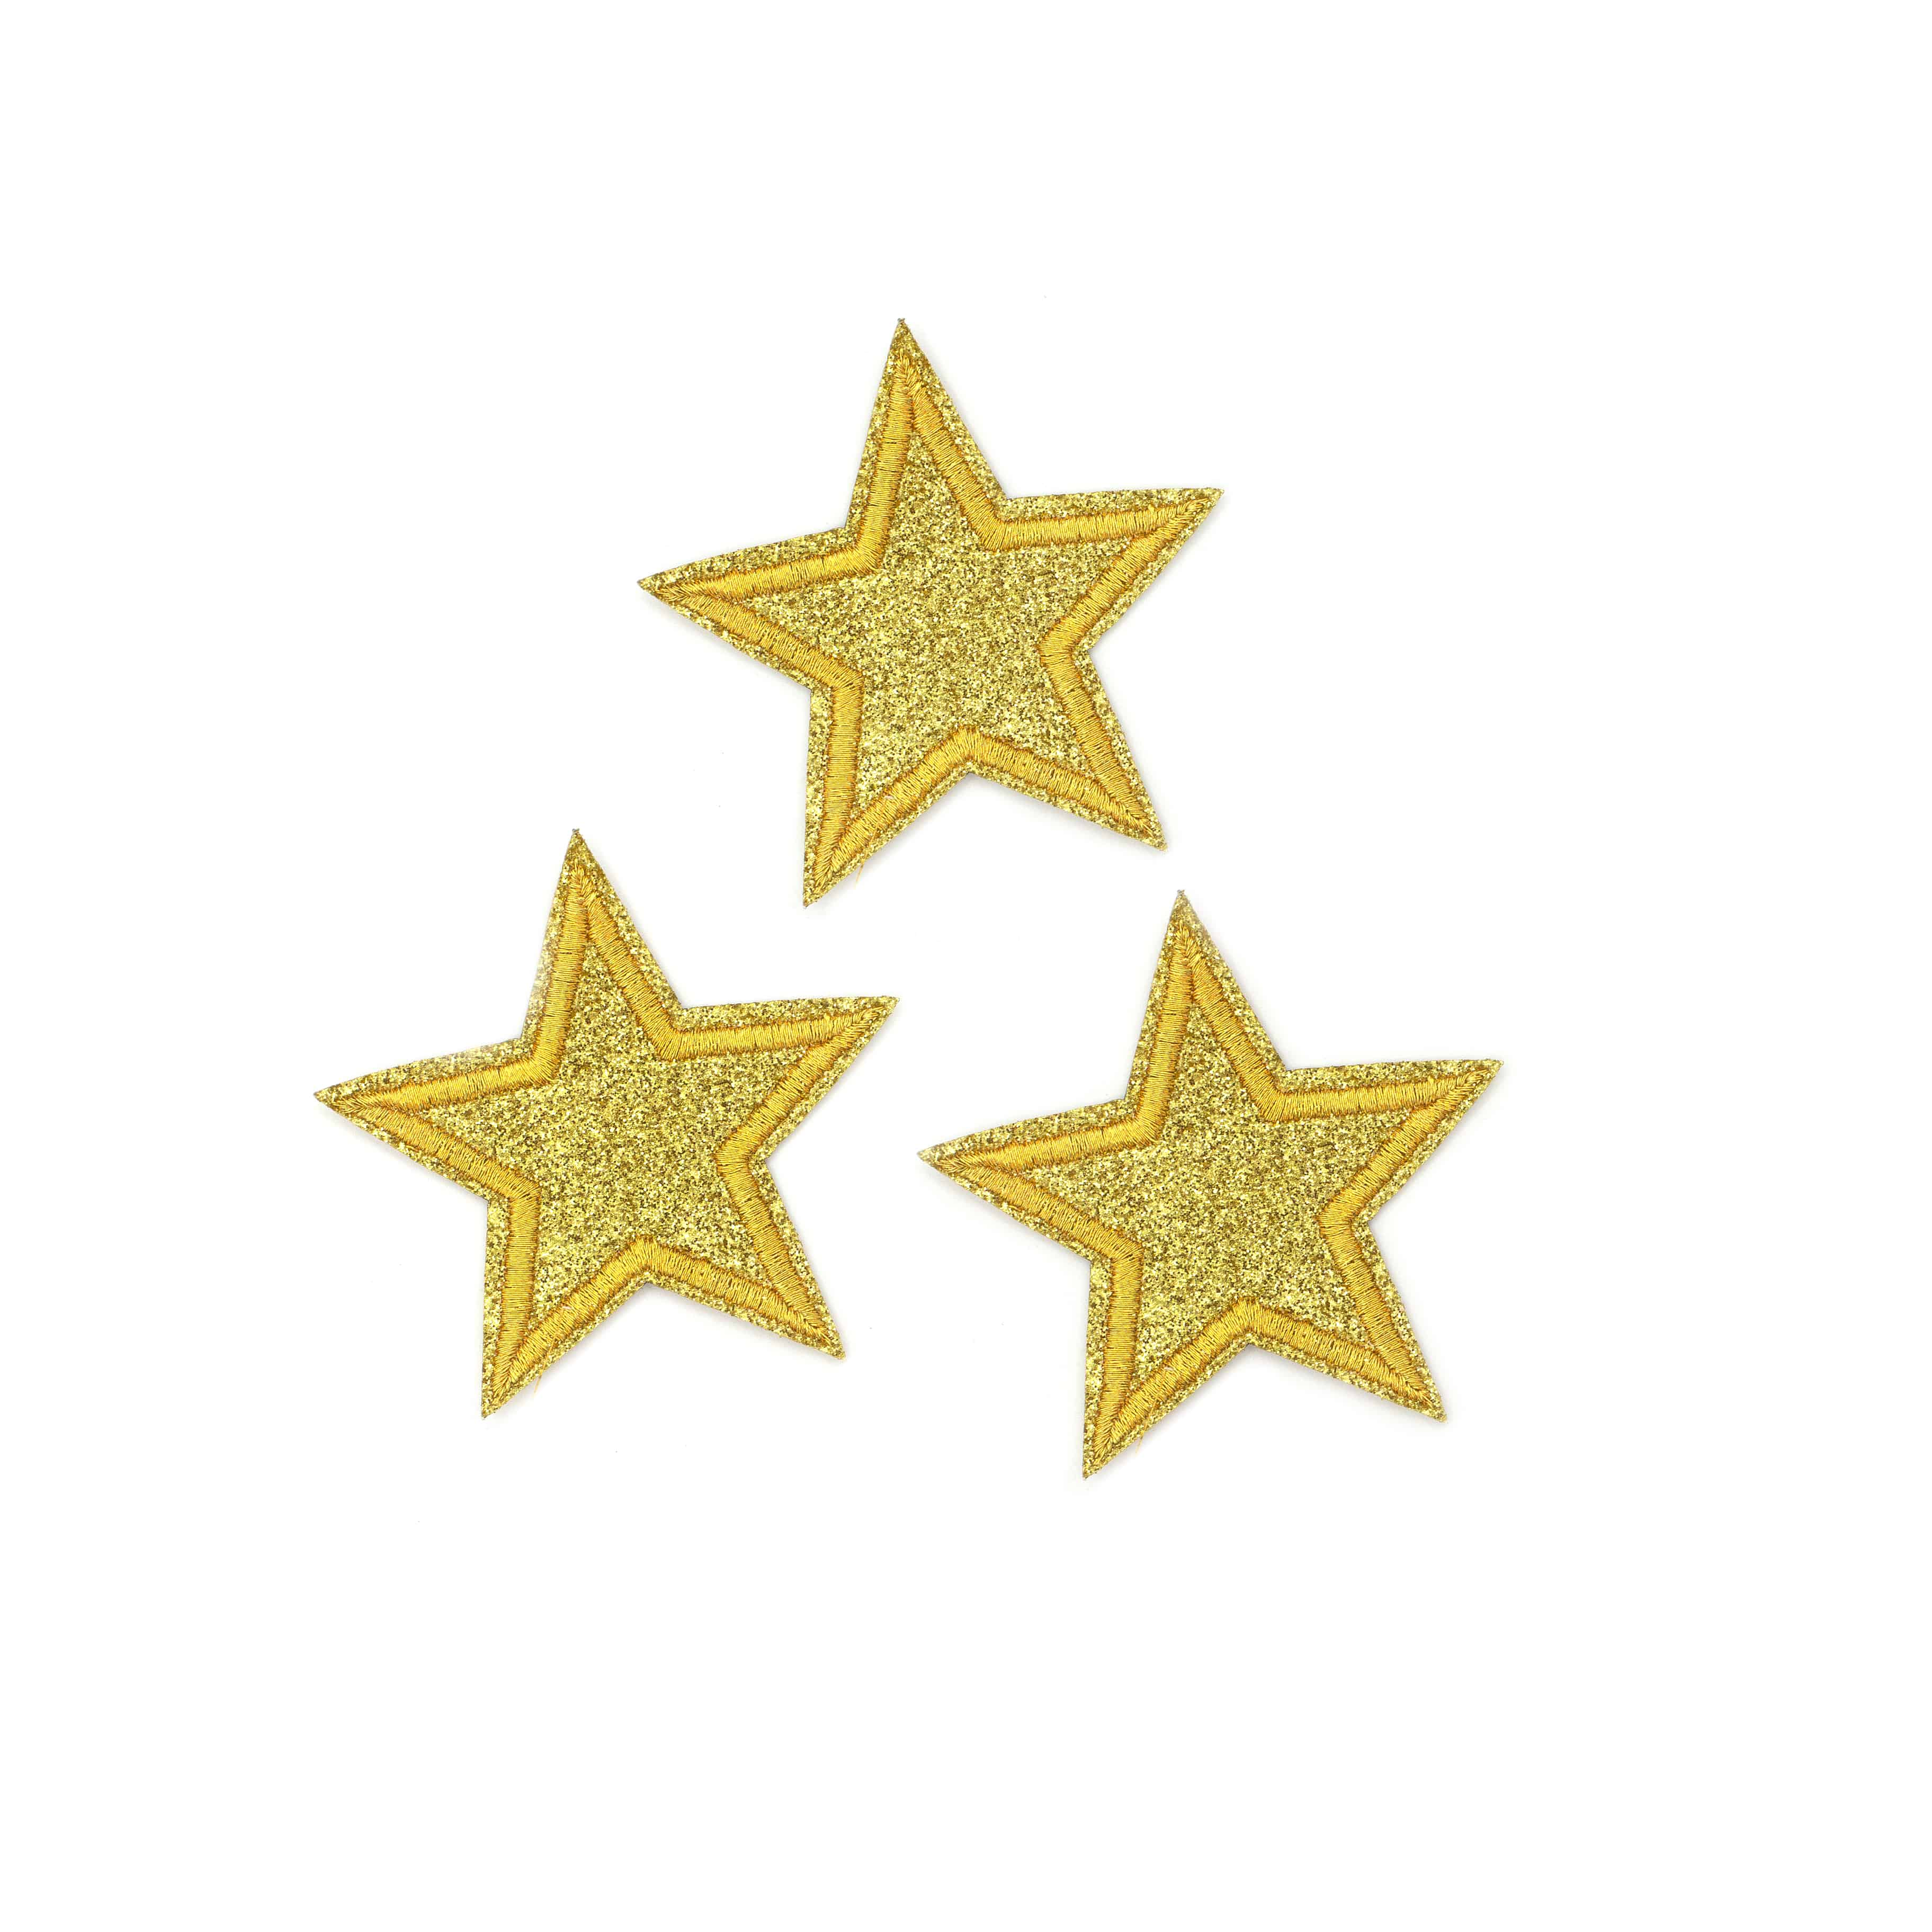 Embroidered Star Patch Appliques High Quality Patch Material can also be Sewn or Glued On Iron On Star Patches